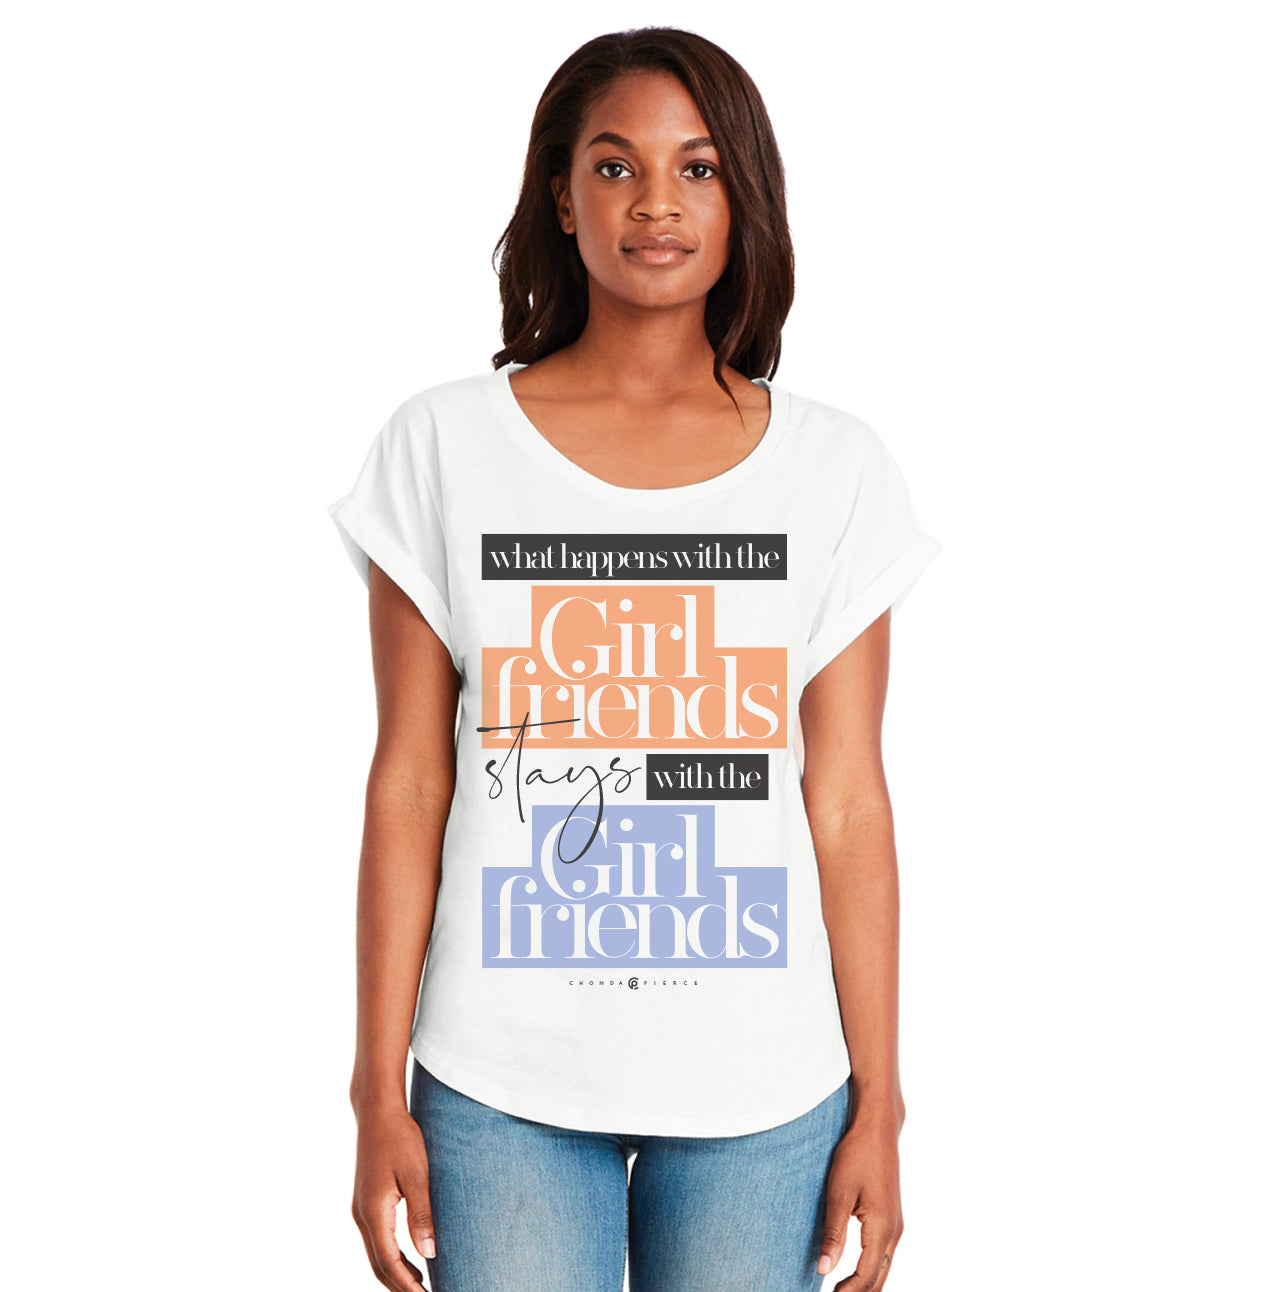 Girlfriends Tee Chonda Pierce